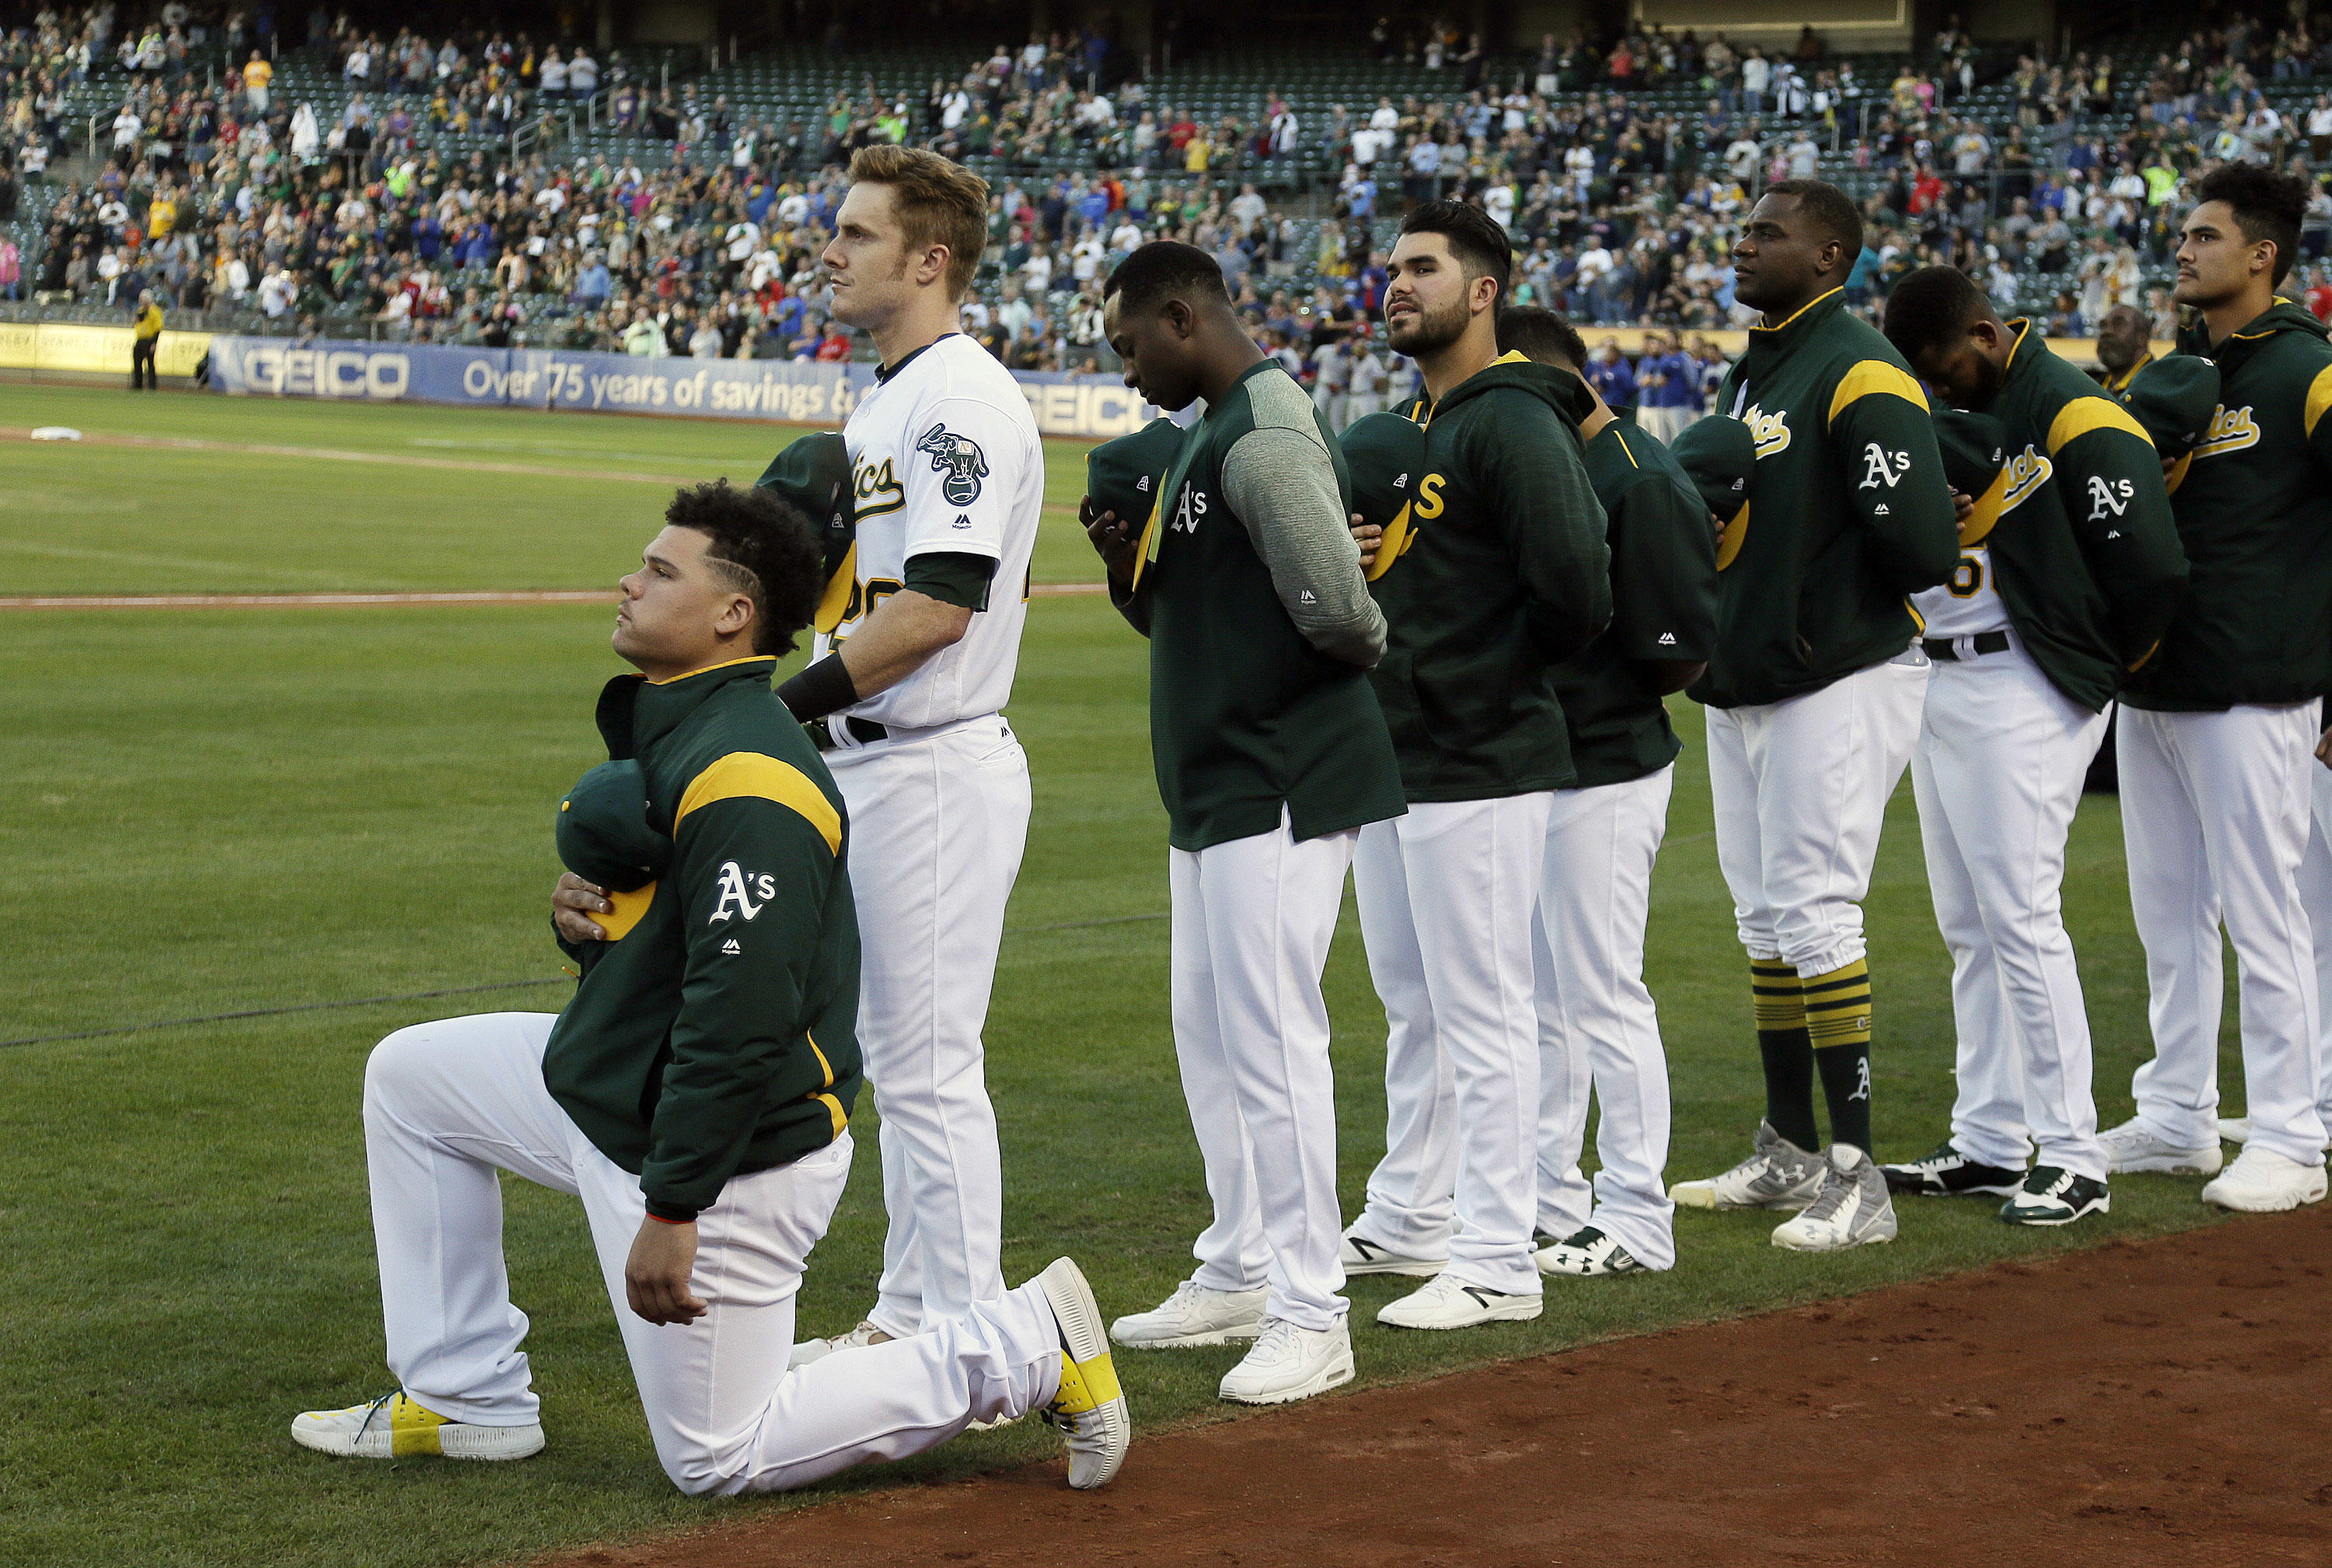 hot sales 3cd54 0feac Oakland A's player becomes first MLB player to kneel during ...